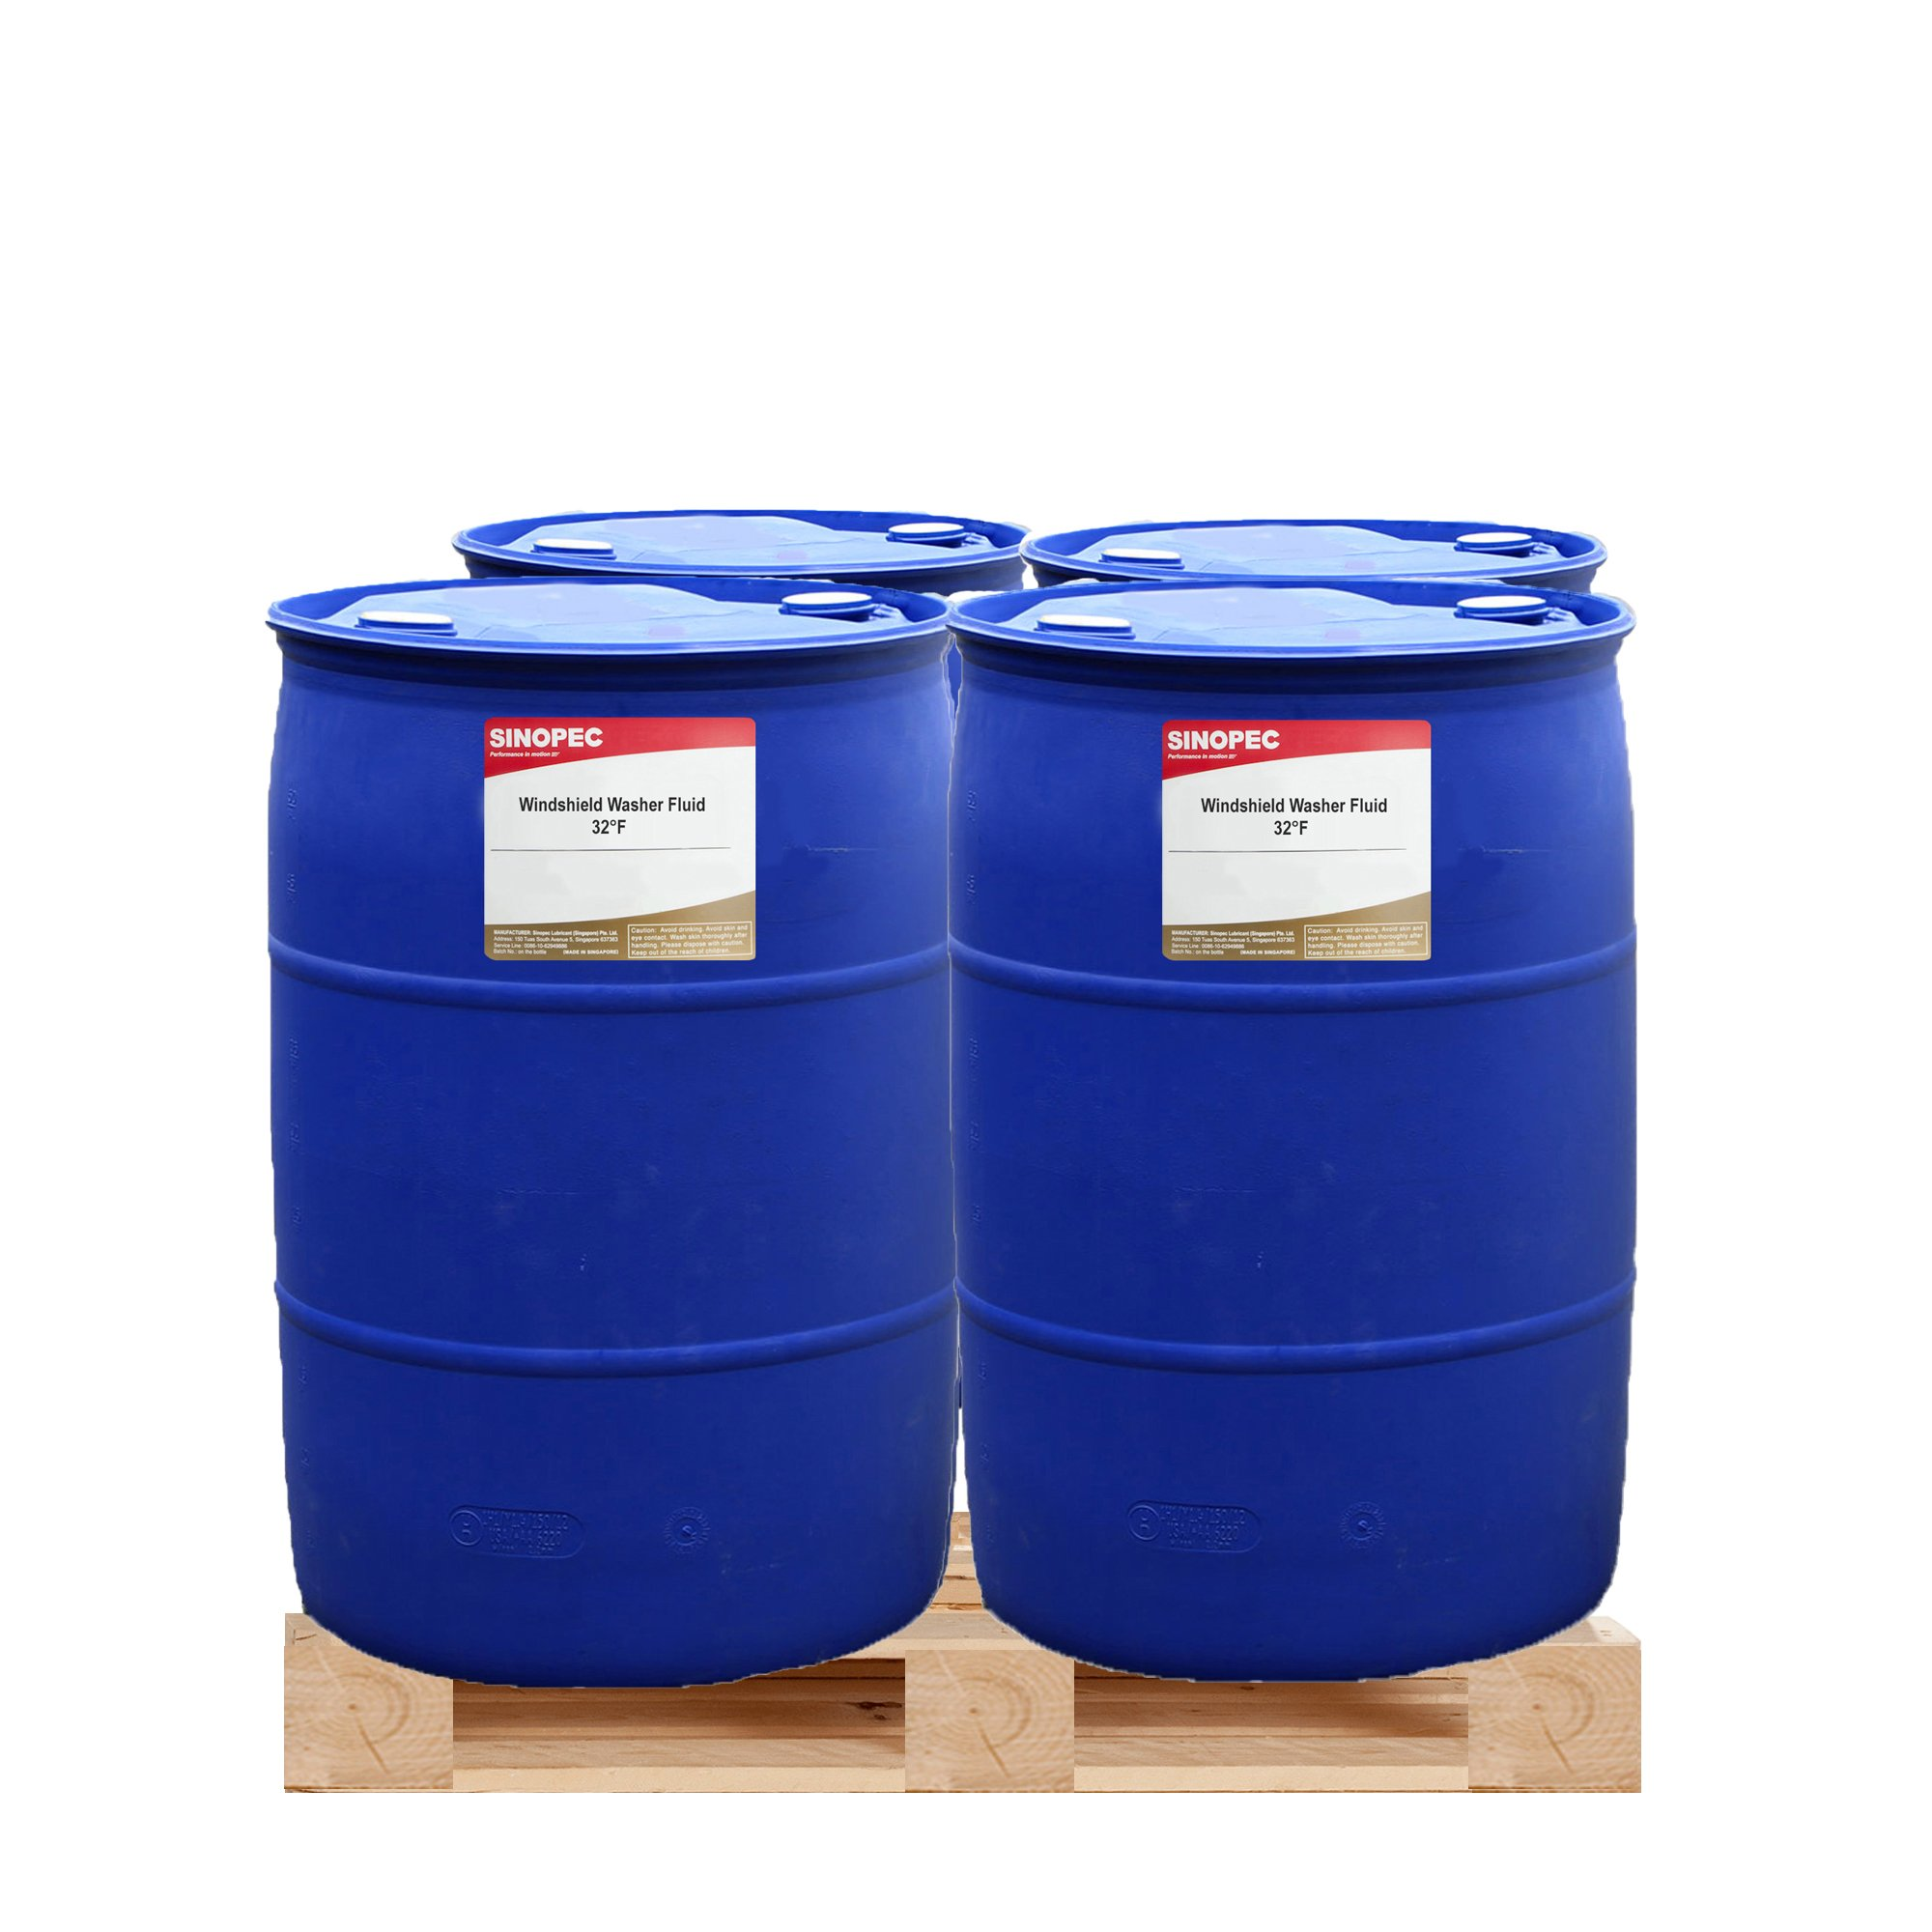 Windshield Washer Fluid, 32°F - 55 Gallon Drum by Sinopec